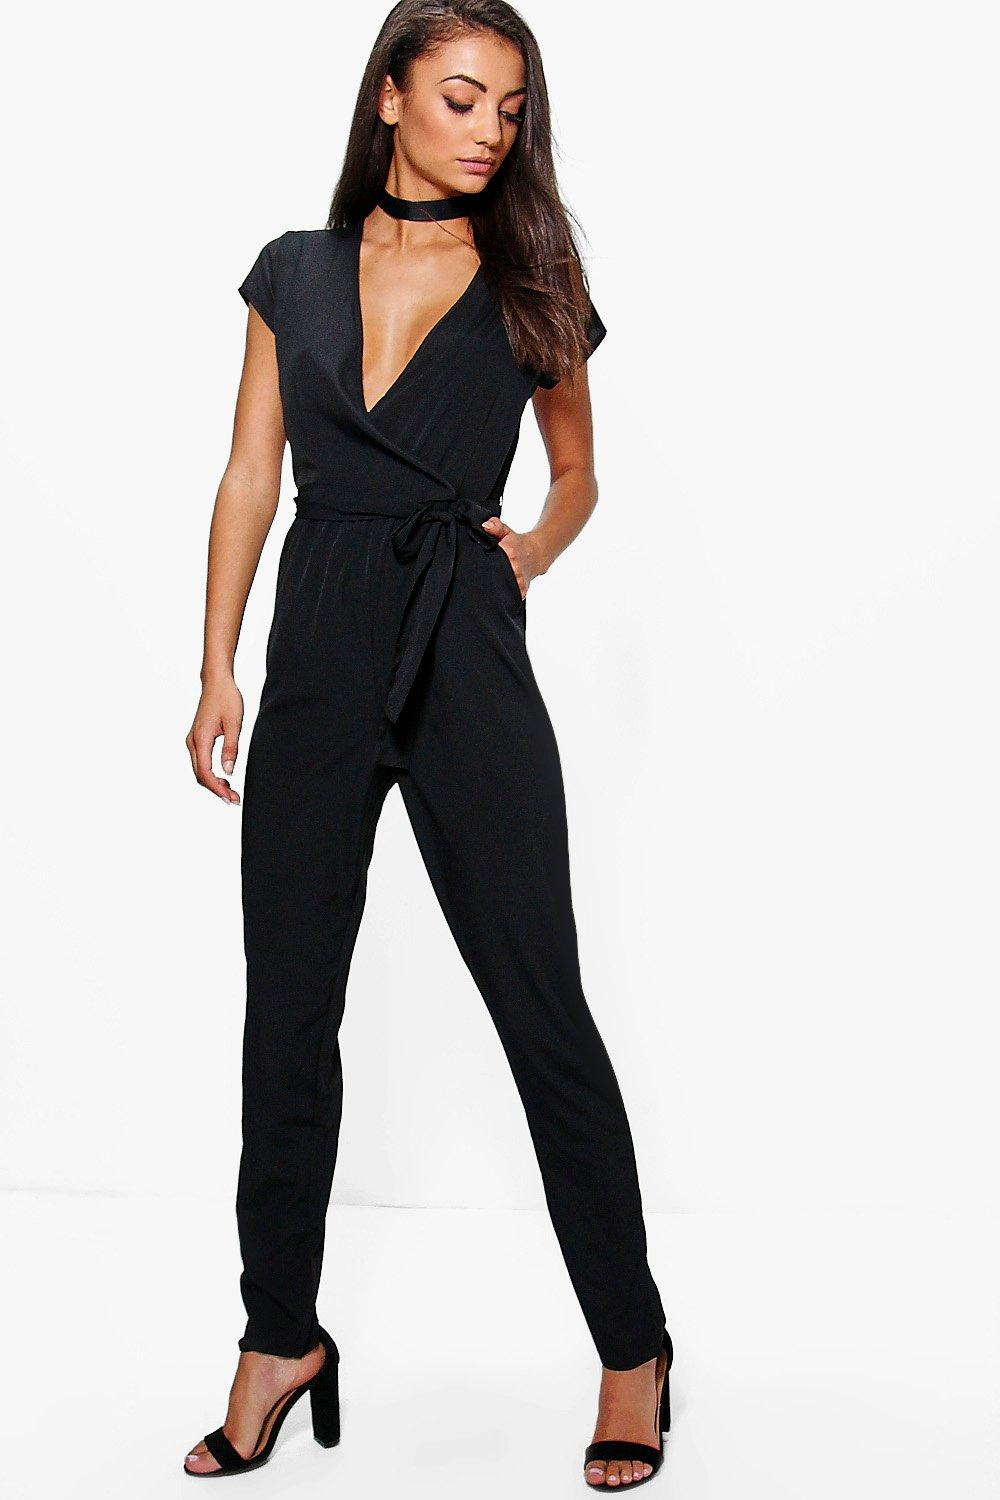 JUMPSUITS & ROMPERS Jump into style with a Venus jumpsuit or romper! Throw on our lounge or wide leg pieces for lazy days spent at home. Strapless culotte and smocked pieces are great for a day time get together while our one shoulder or off the shoulder styles meet all your nighttime needs.